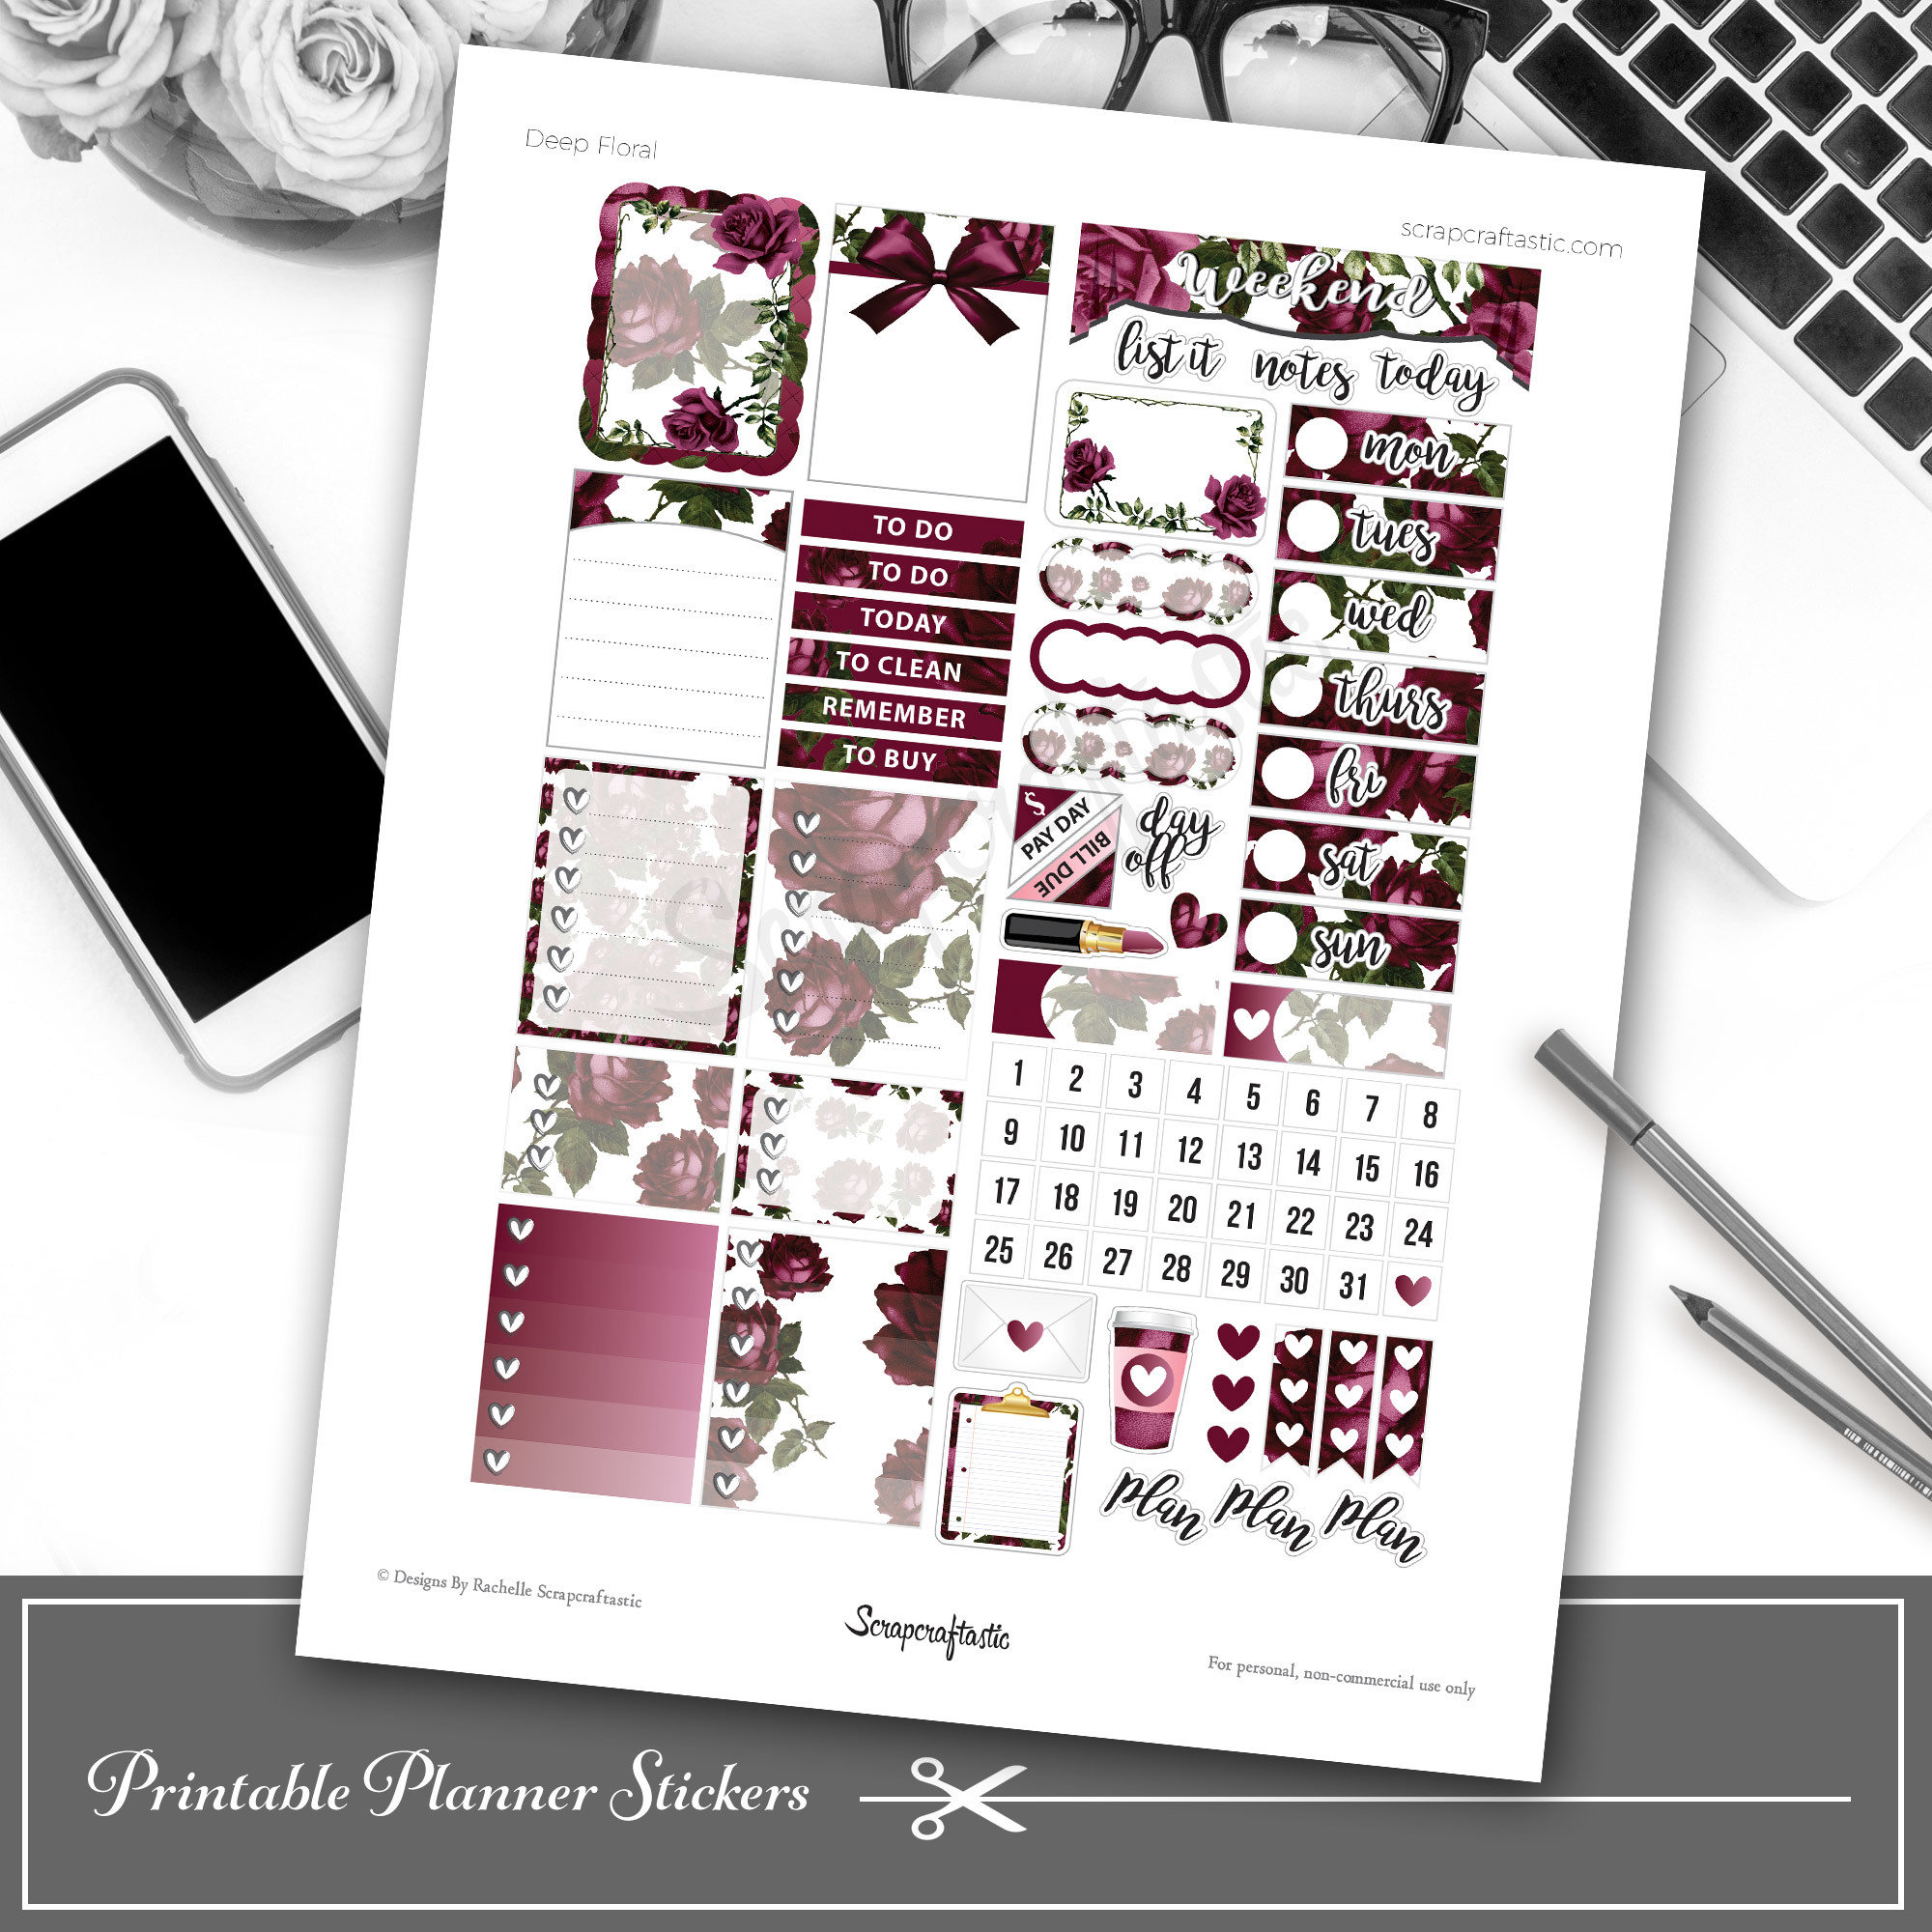 Deep Floral Printable Planner Stickers 04165